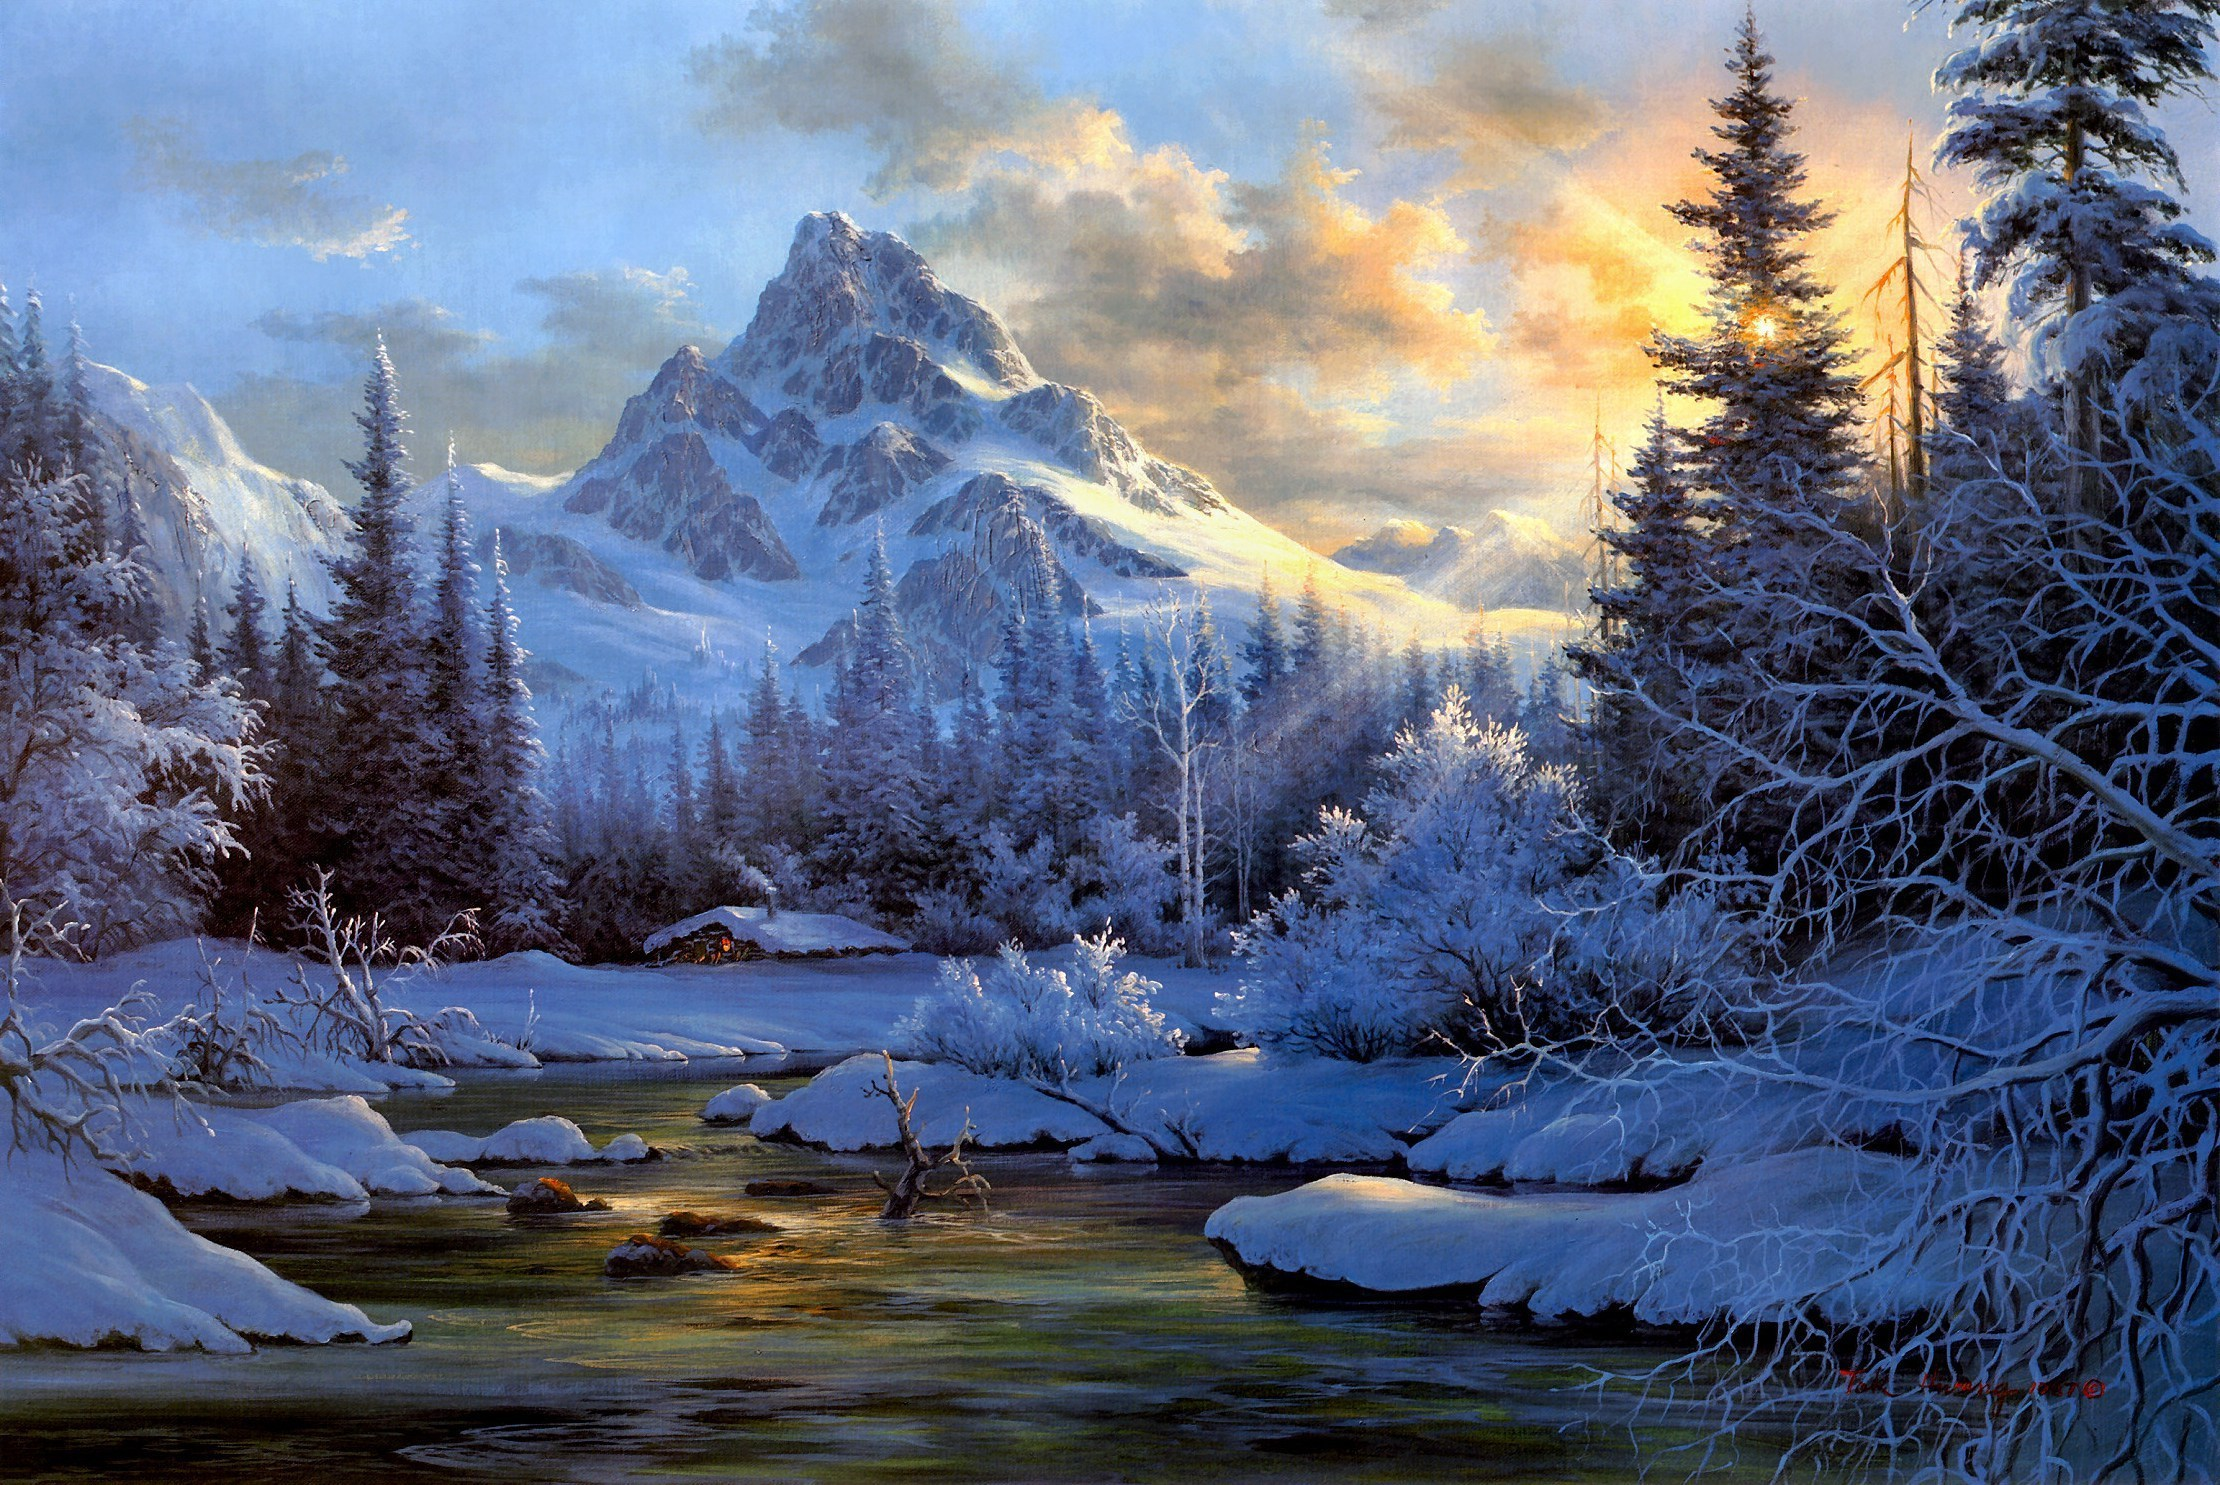 Drawn river mountain river Mountain Picture images of of